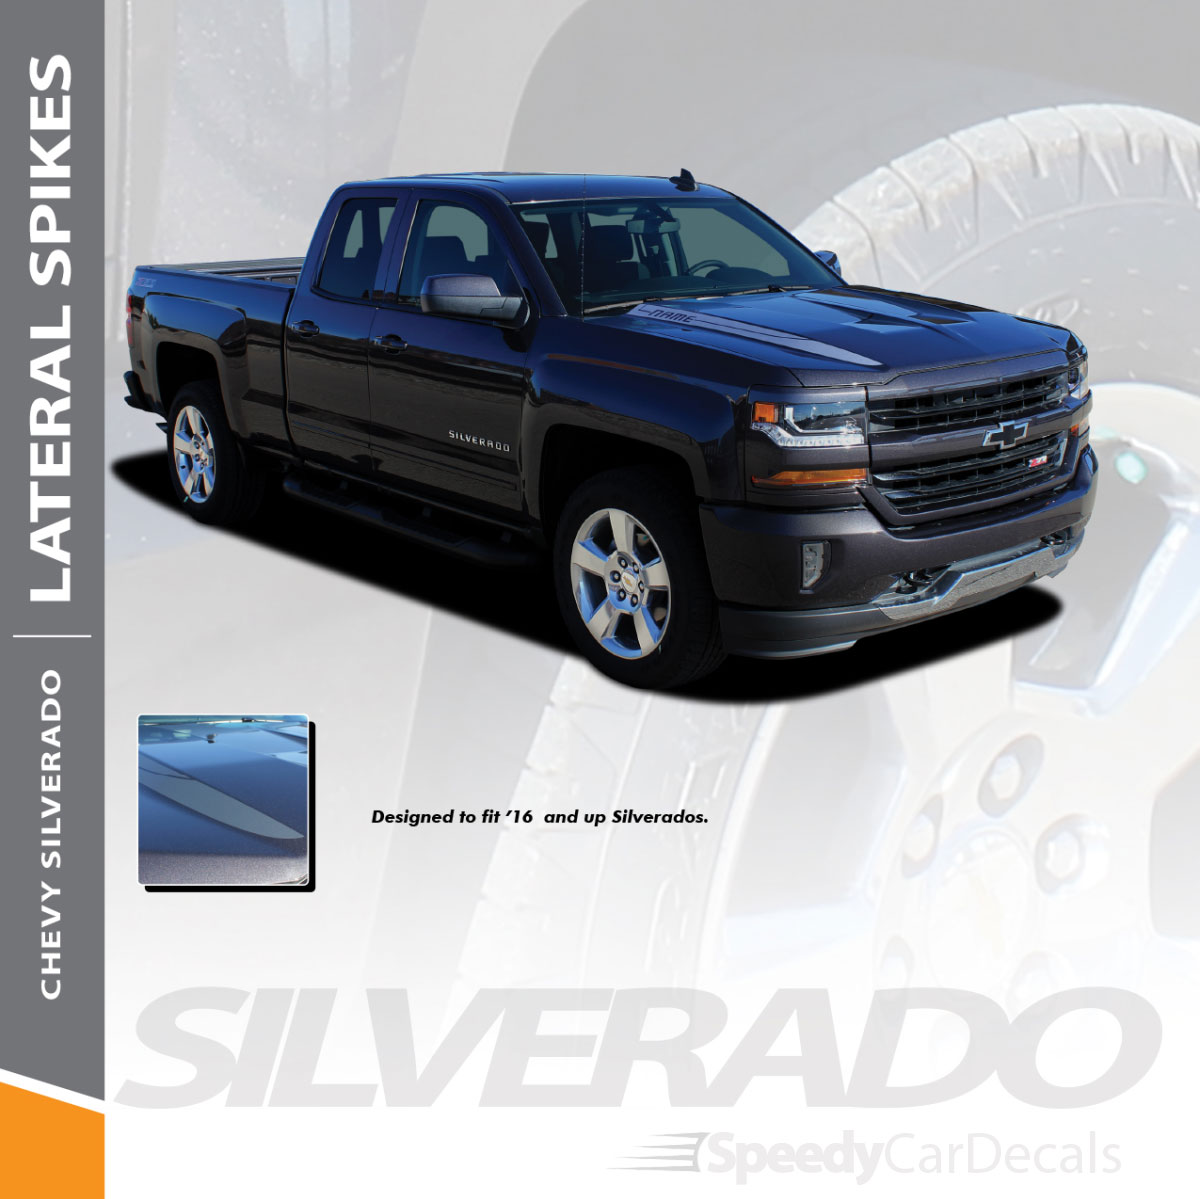 Chevy Silverado Hood Spear Stripes 2016 2017 2018  Vinyl Decal Graphics Style 2